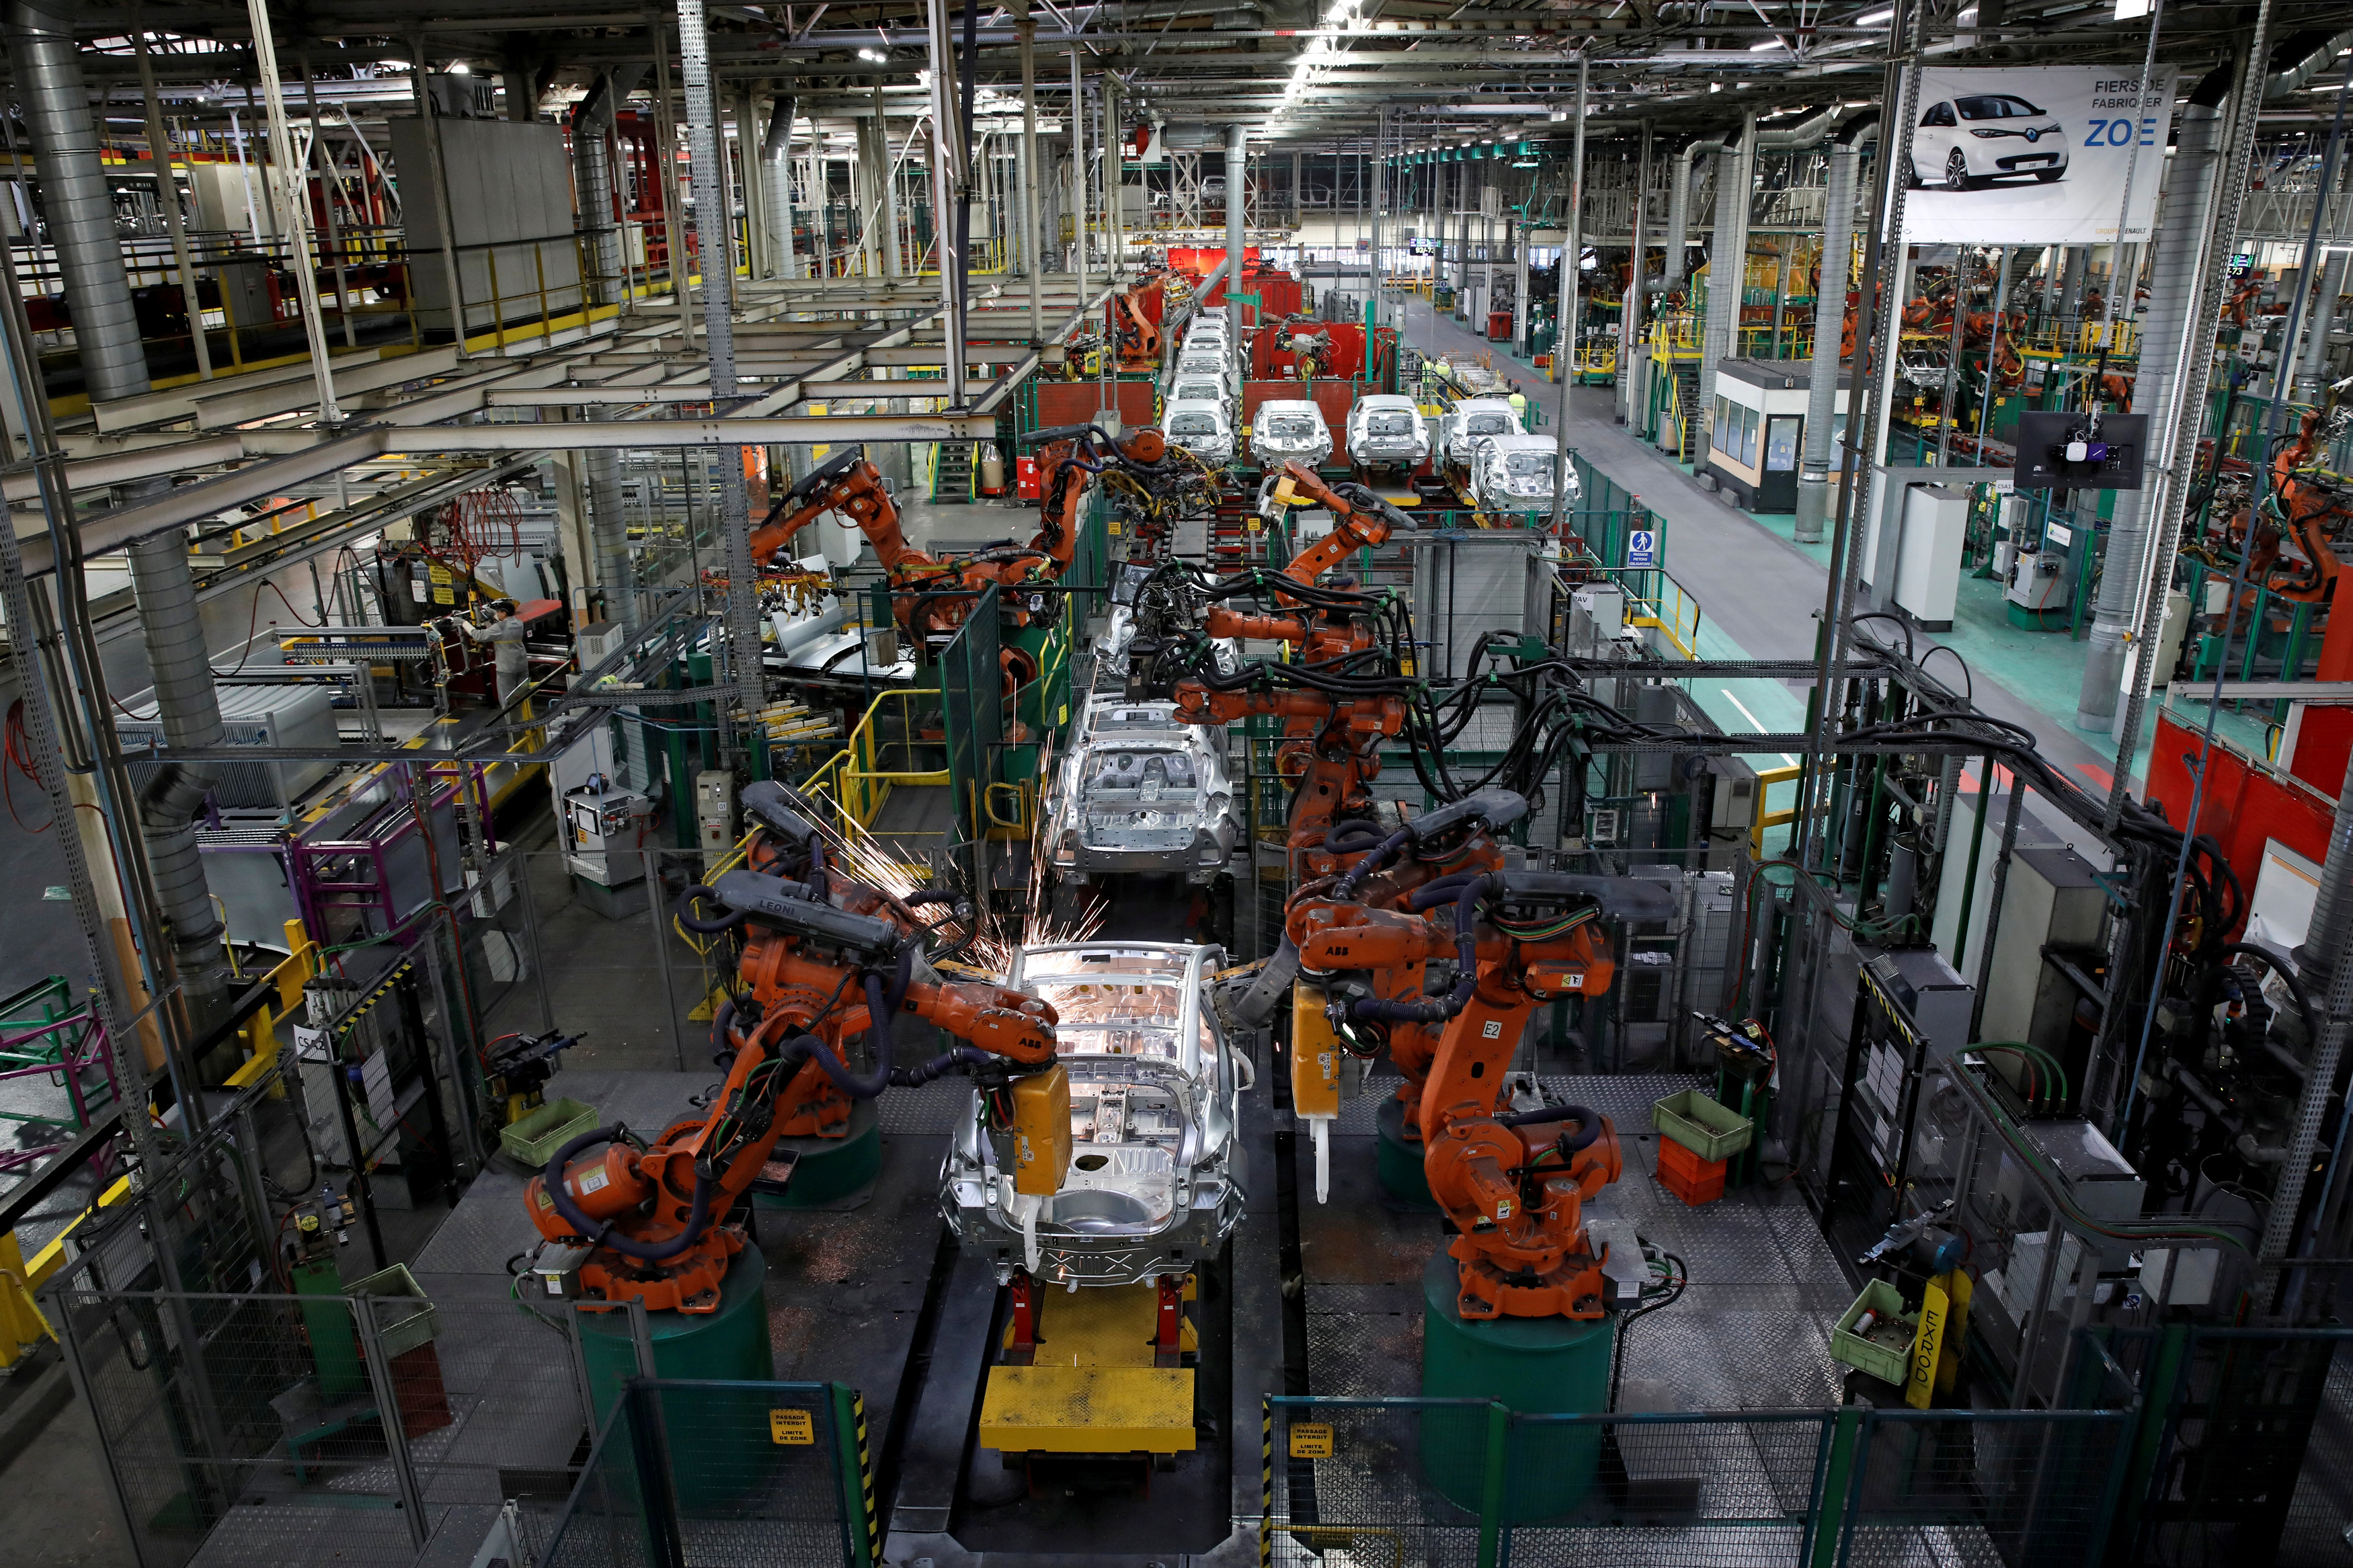 Robots assemble Renault and Nissan automobiles on the production line at the Renault SA car factory.